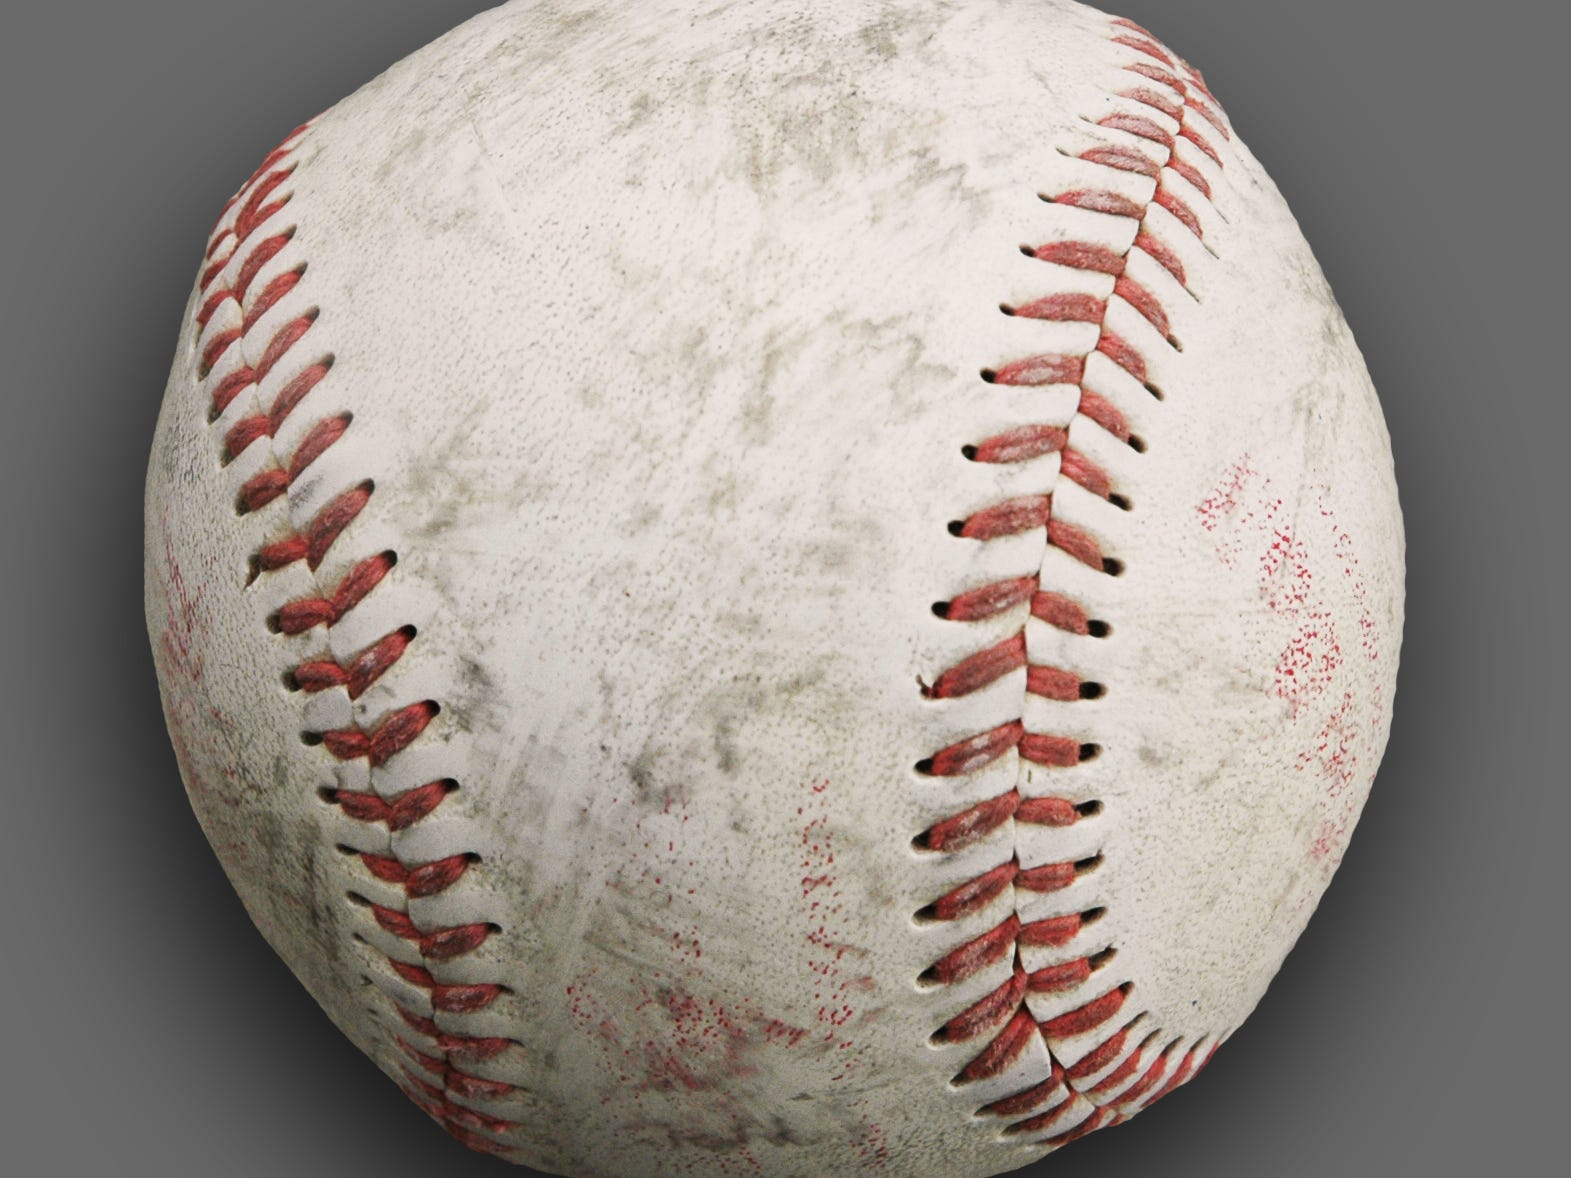 The Manitowoc Lincoln baseball team hosted Appleton West and Bay Port on Saturday, falling in both contests.